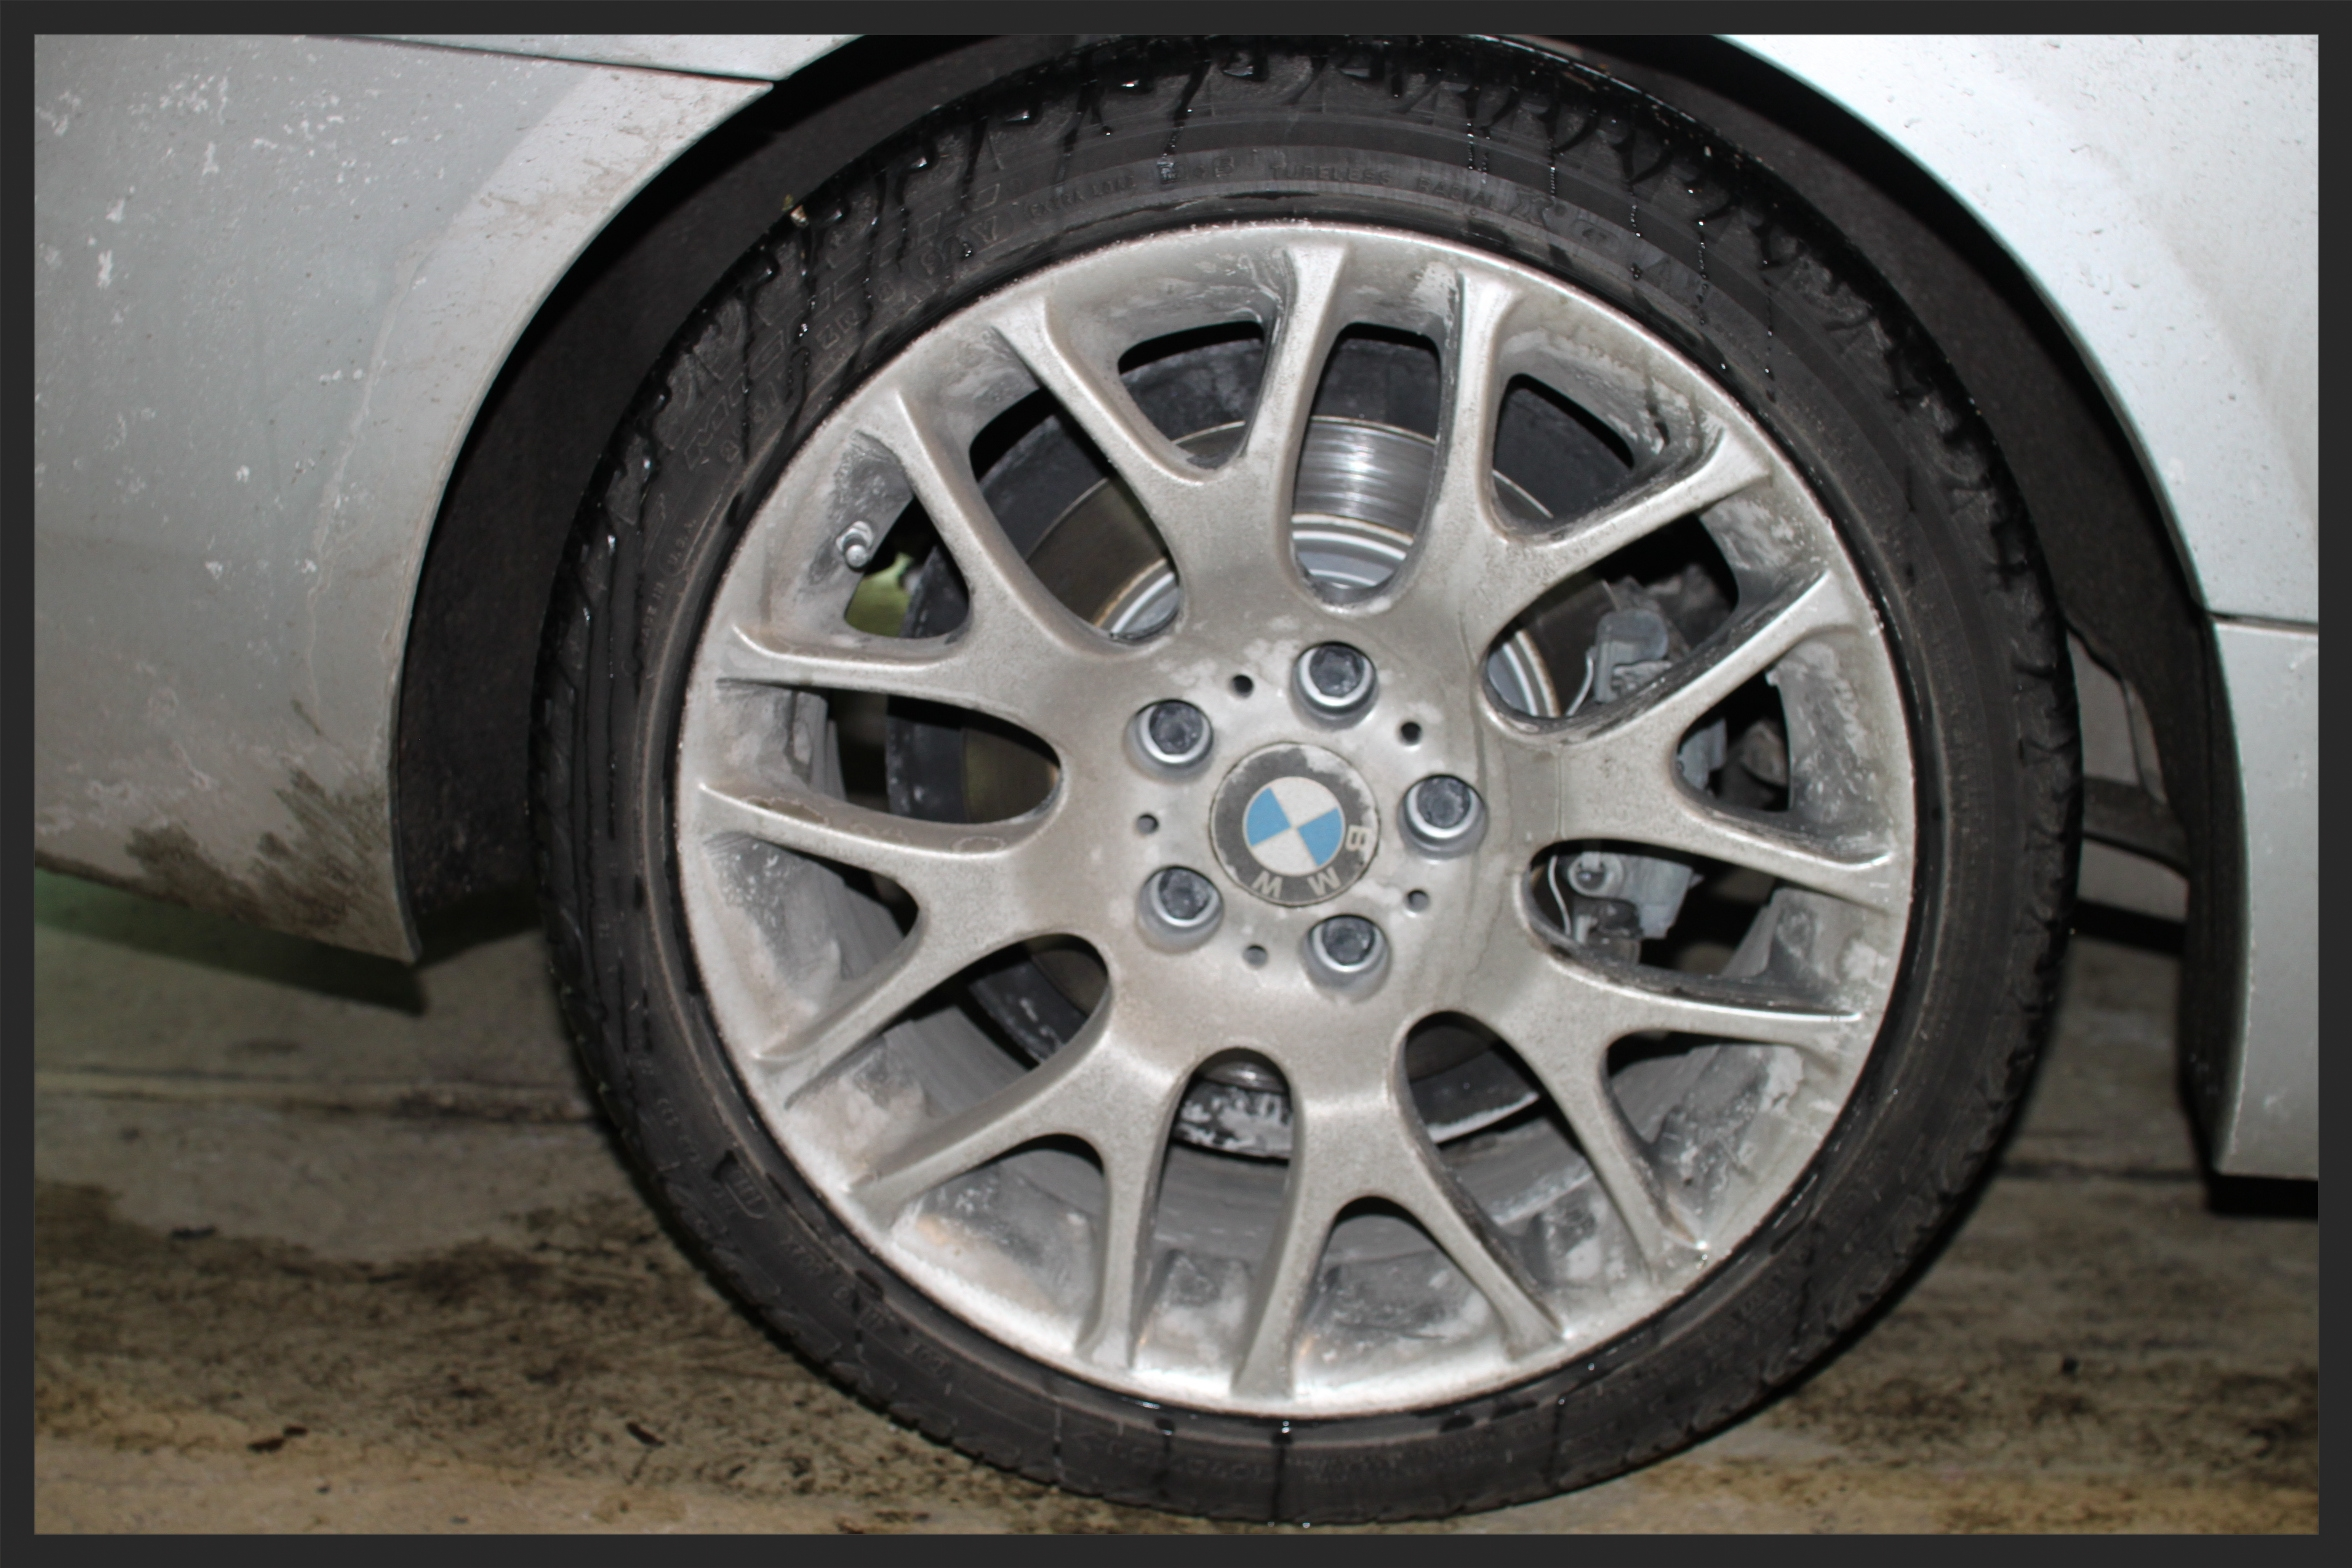 MORE SALT, DIRT, GRIME ON YOUR WHEELS, WHICH CAUSES THE WHEELS TO LOOSE ITS FINISH.